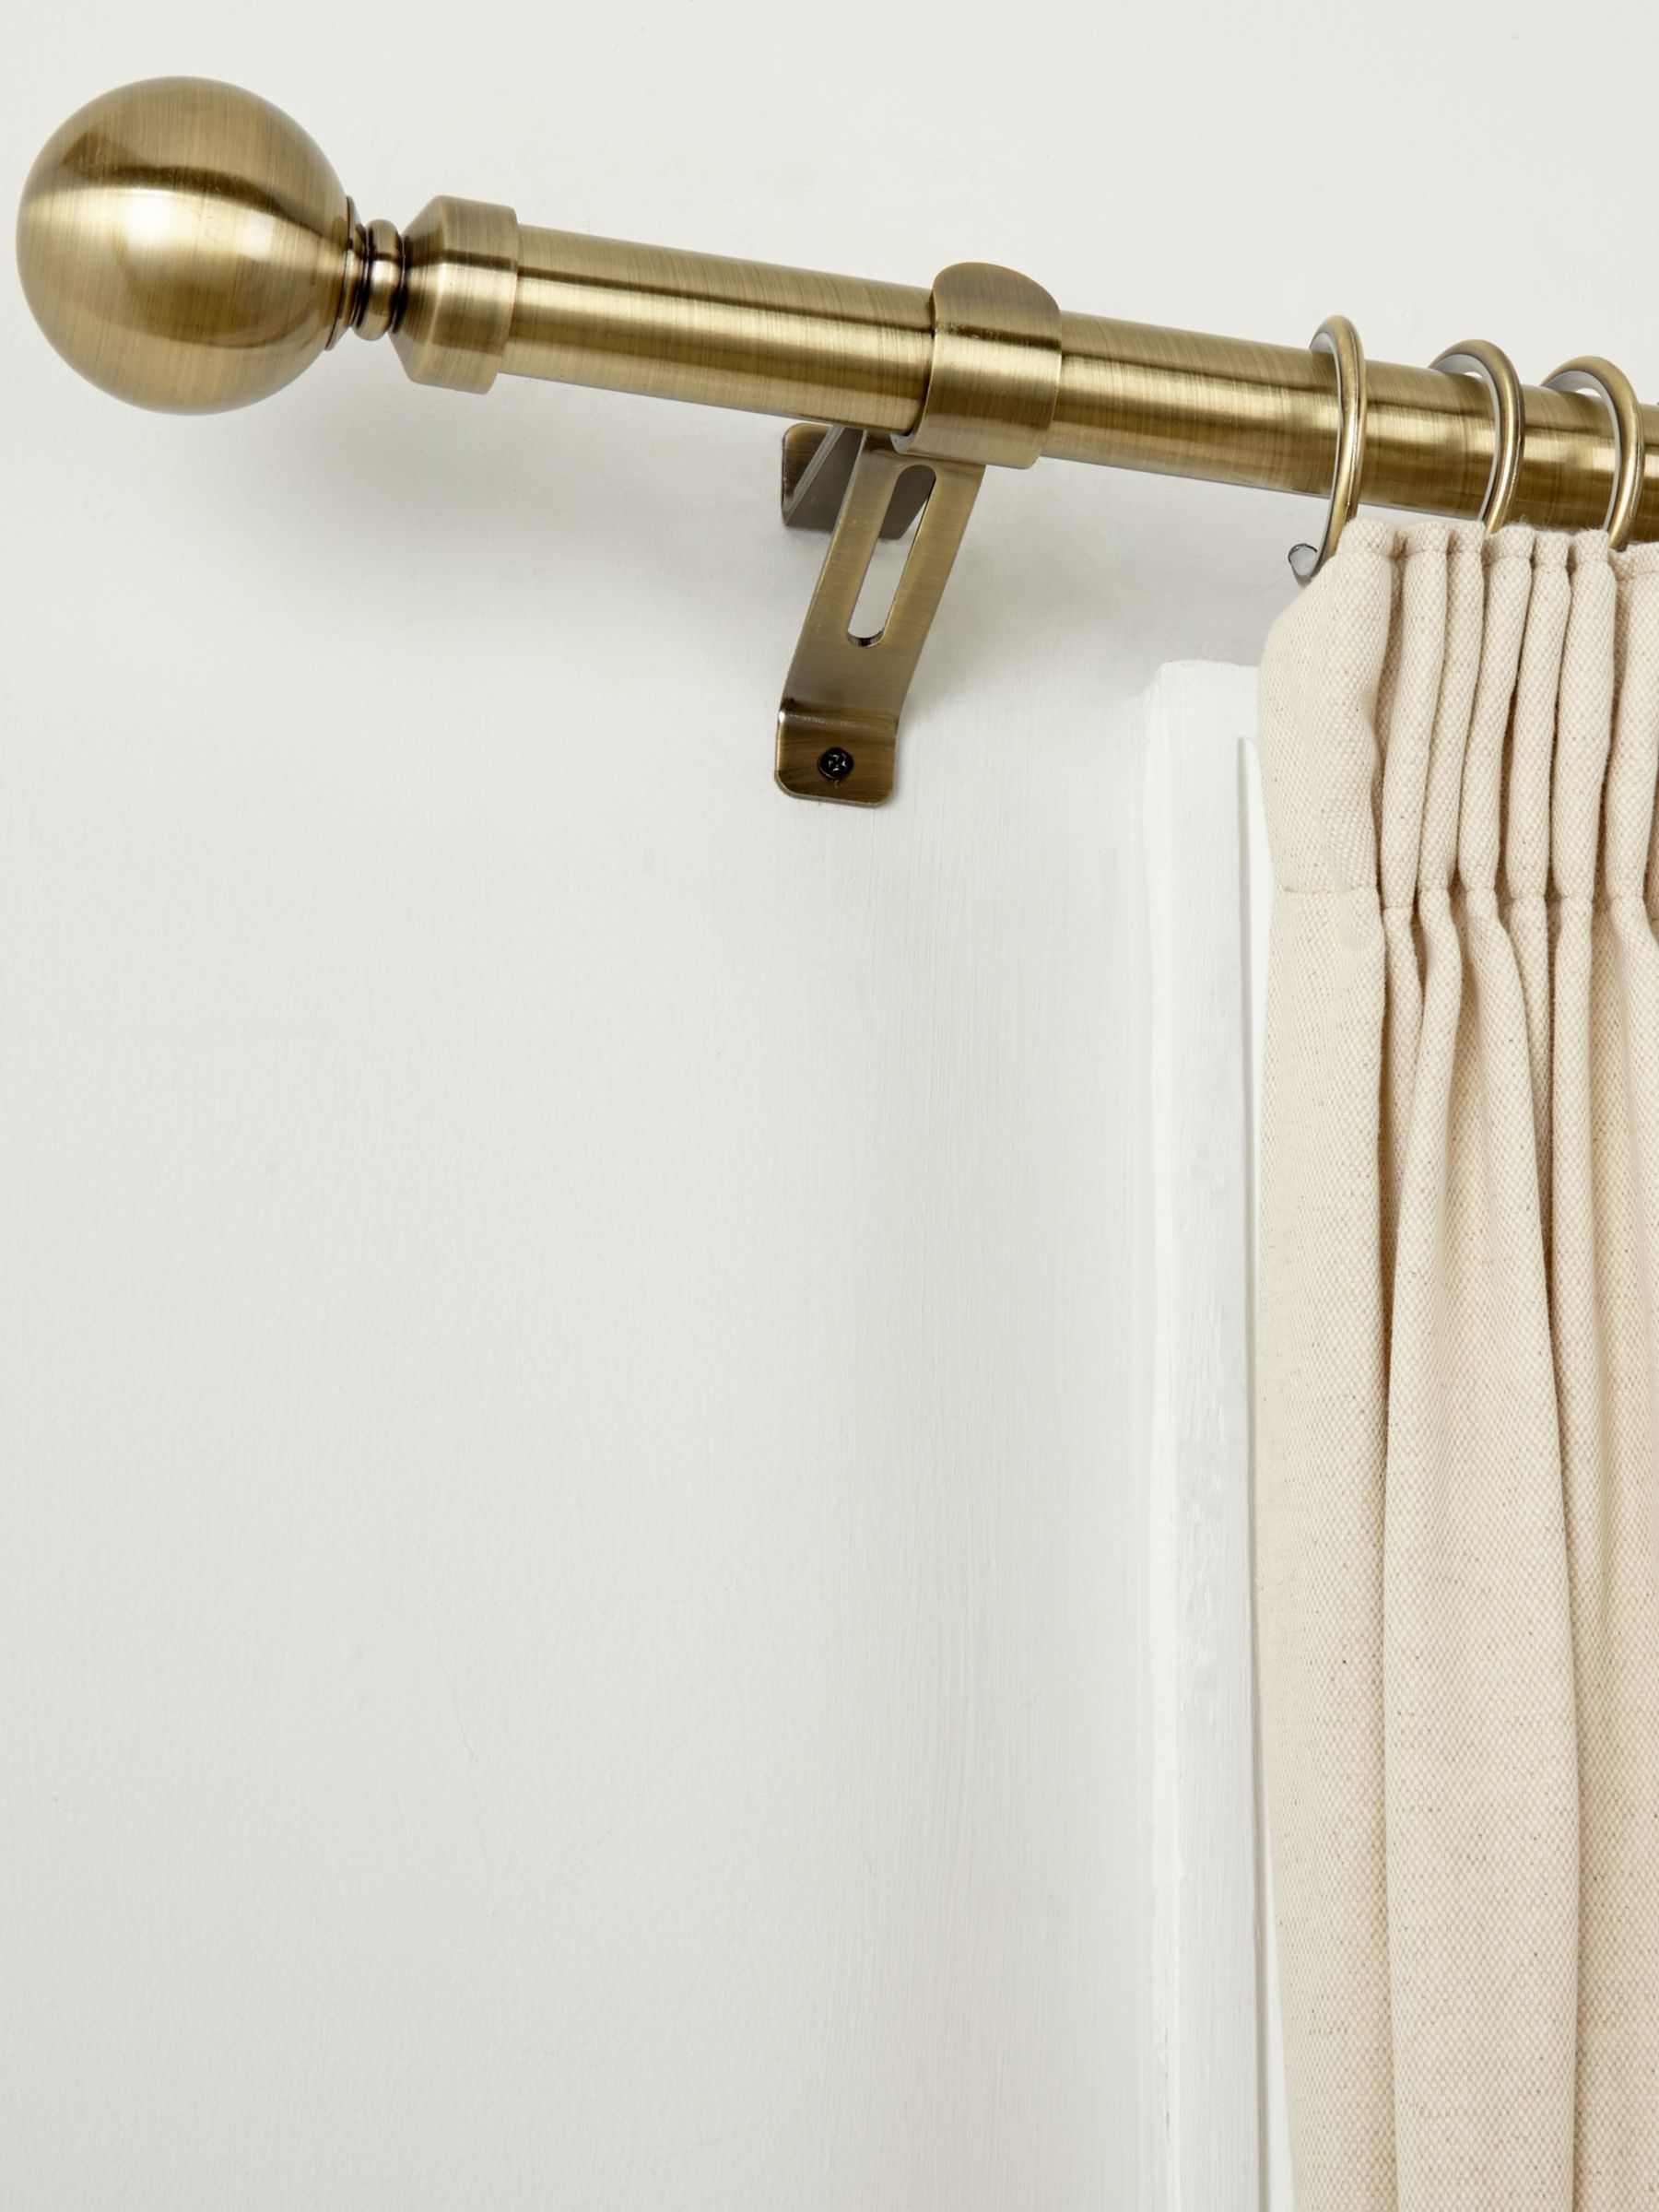 Swish Elements Bay Window Curtain Pole Kit L400cm X Dia 28mm Antique Brass